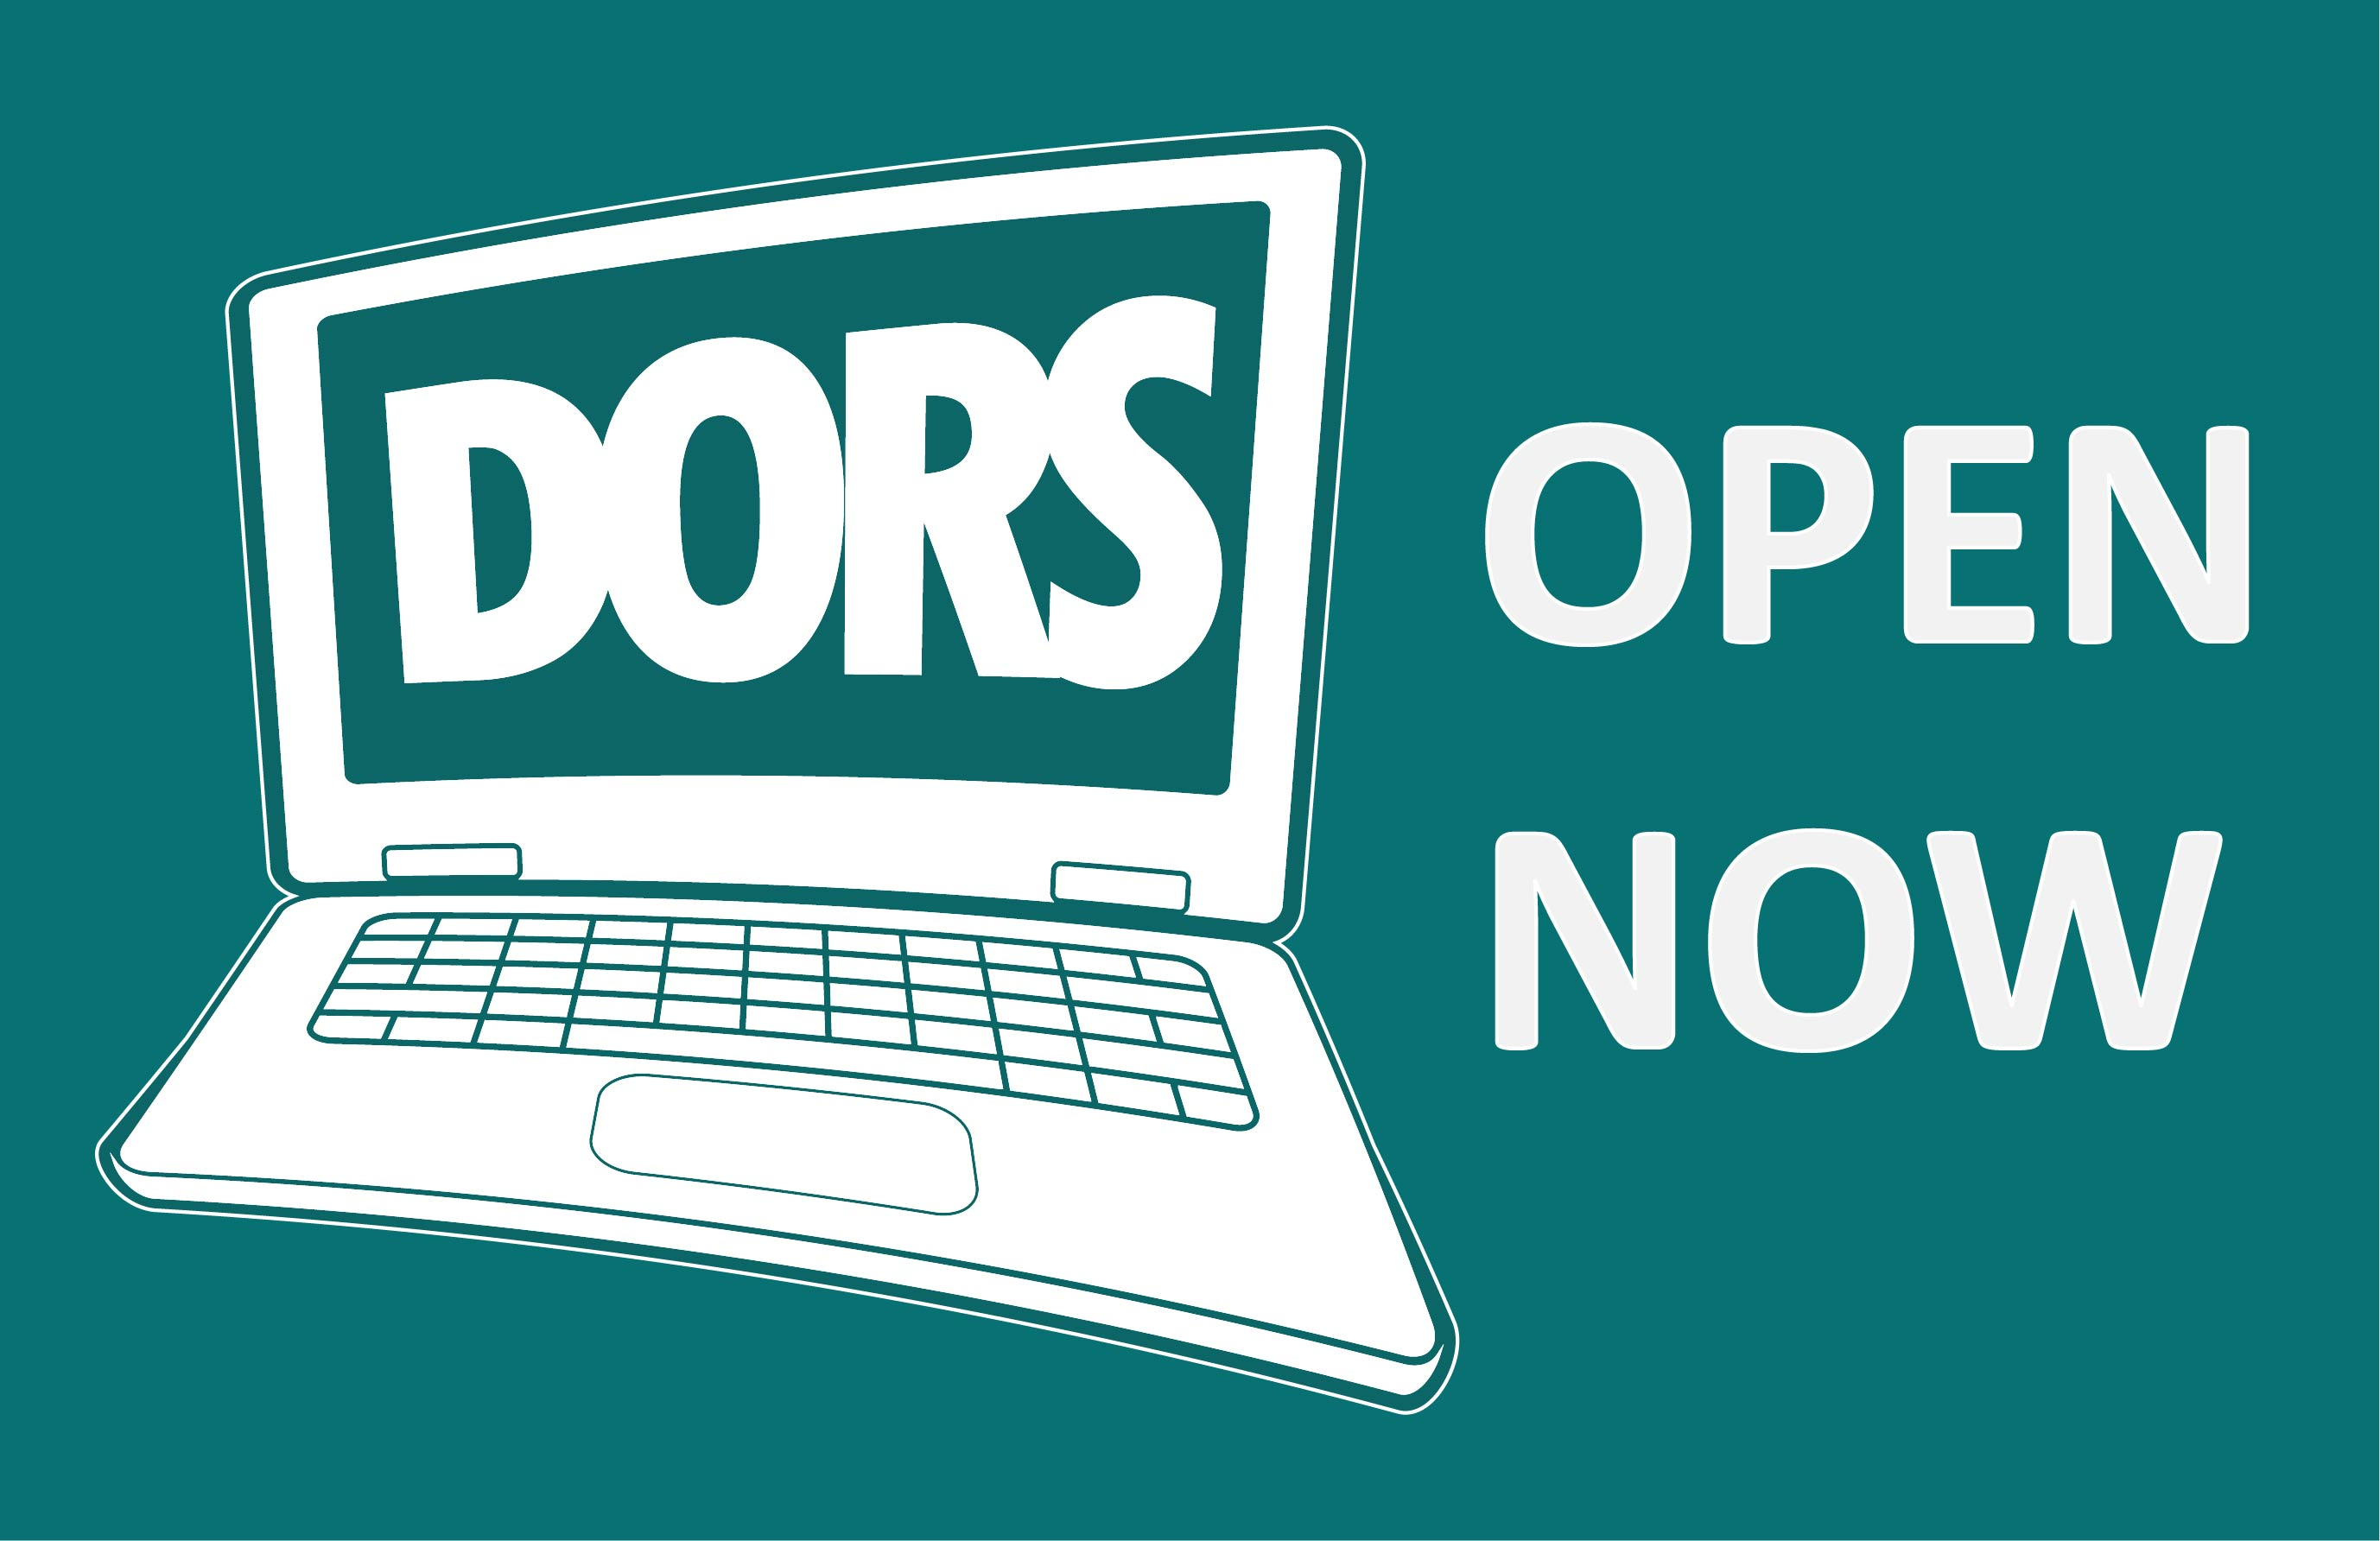 Permanent Link to DORS OPEN NOW